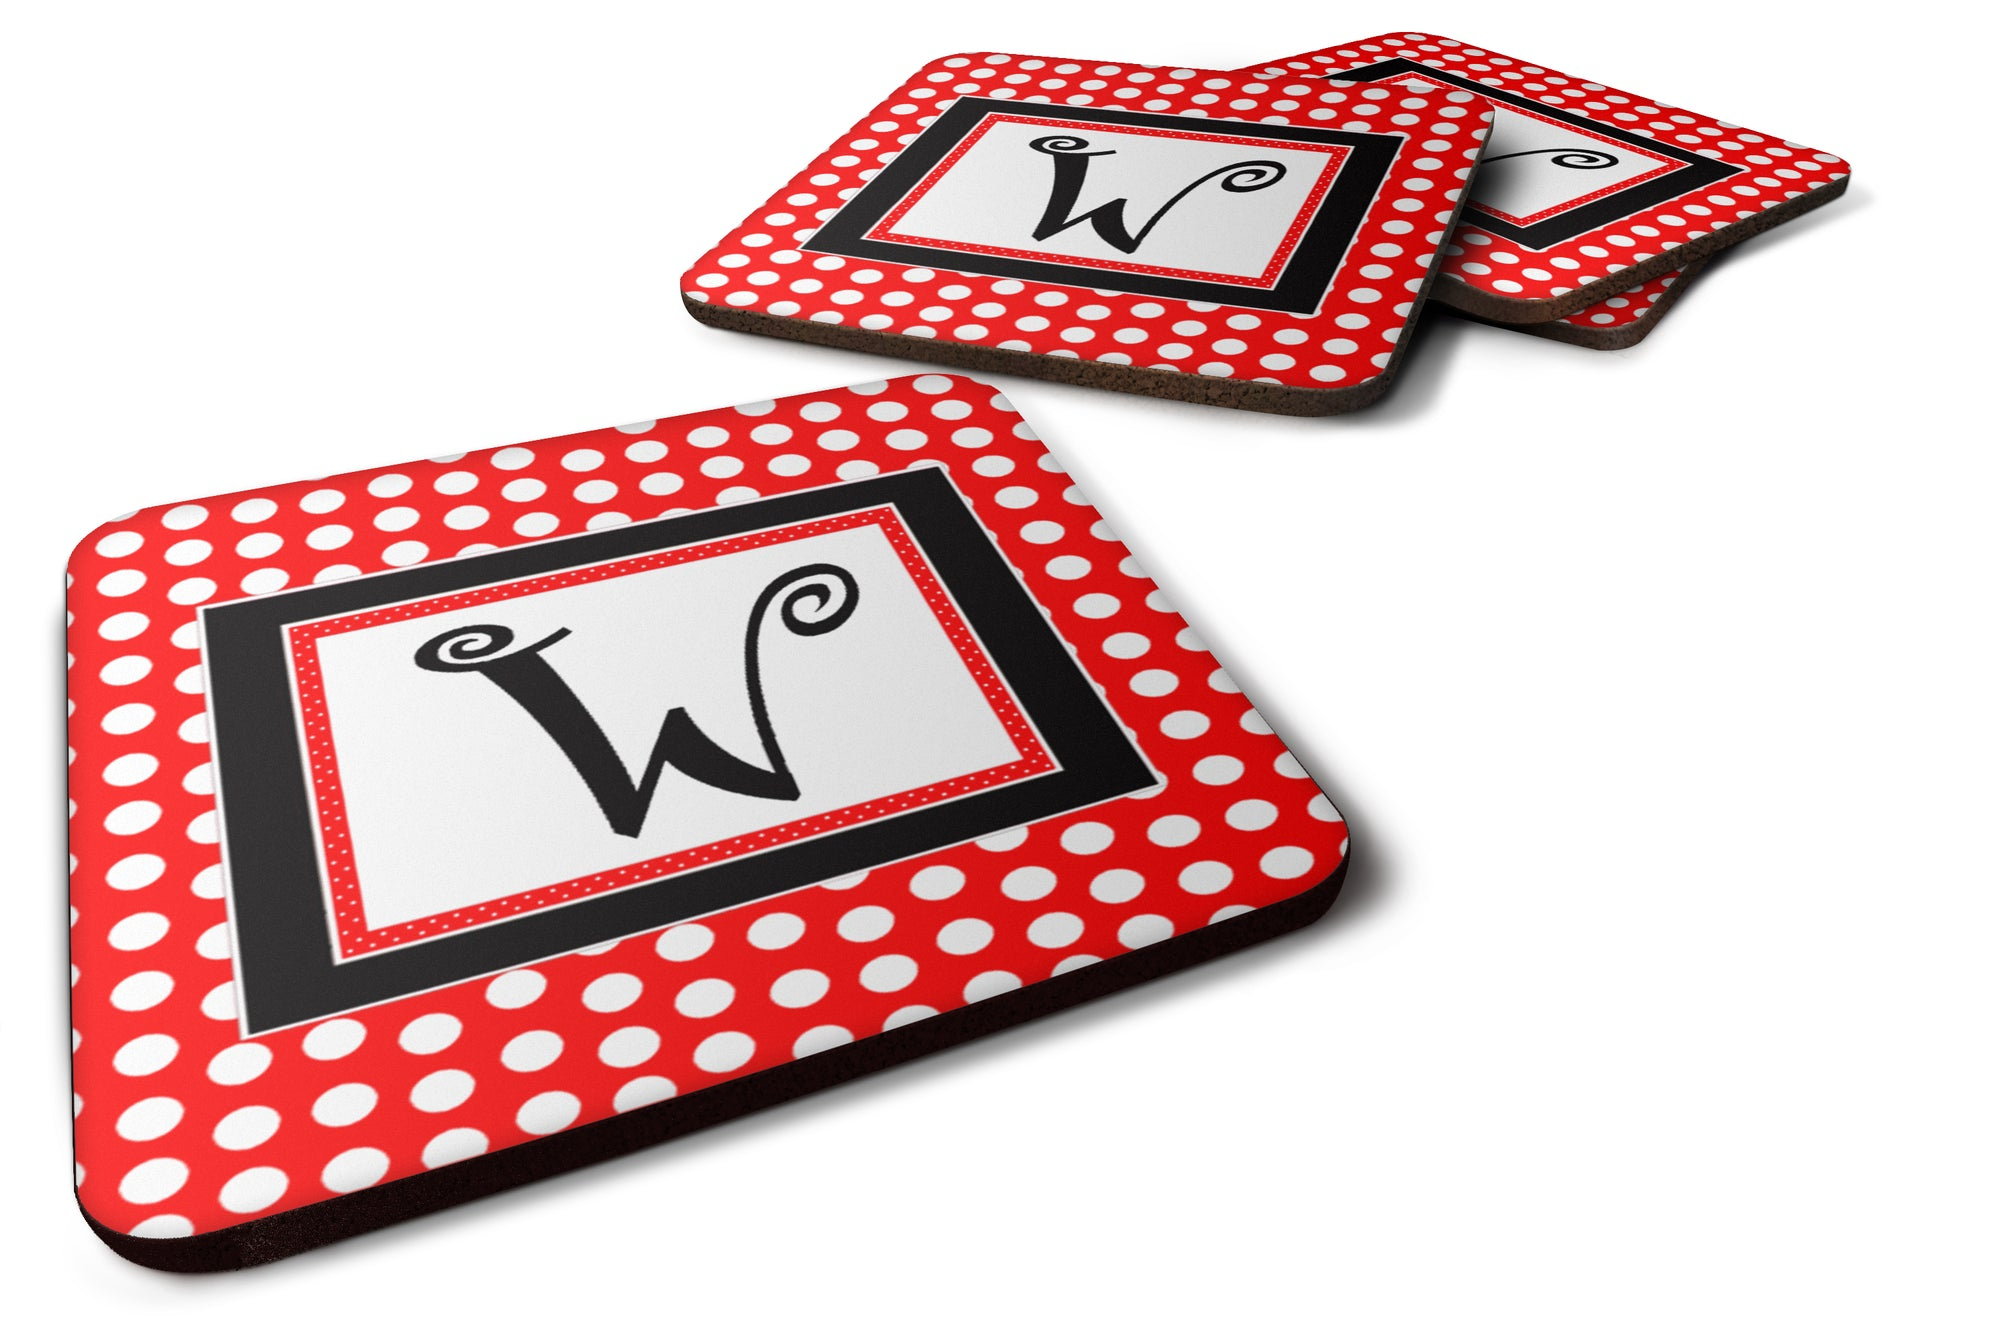 Set of 4 Monogram - Red Black Polka Dots Foam Coasters Initial Letter W by Caroline's Treasures